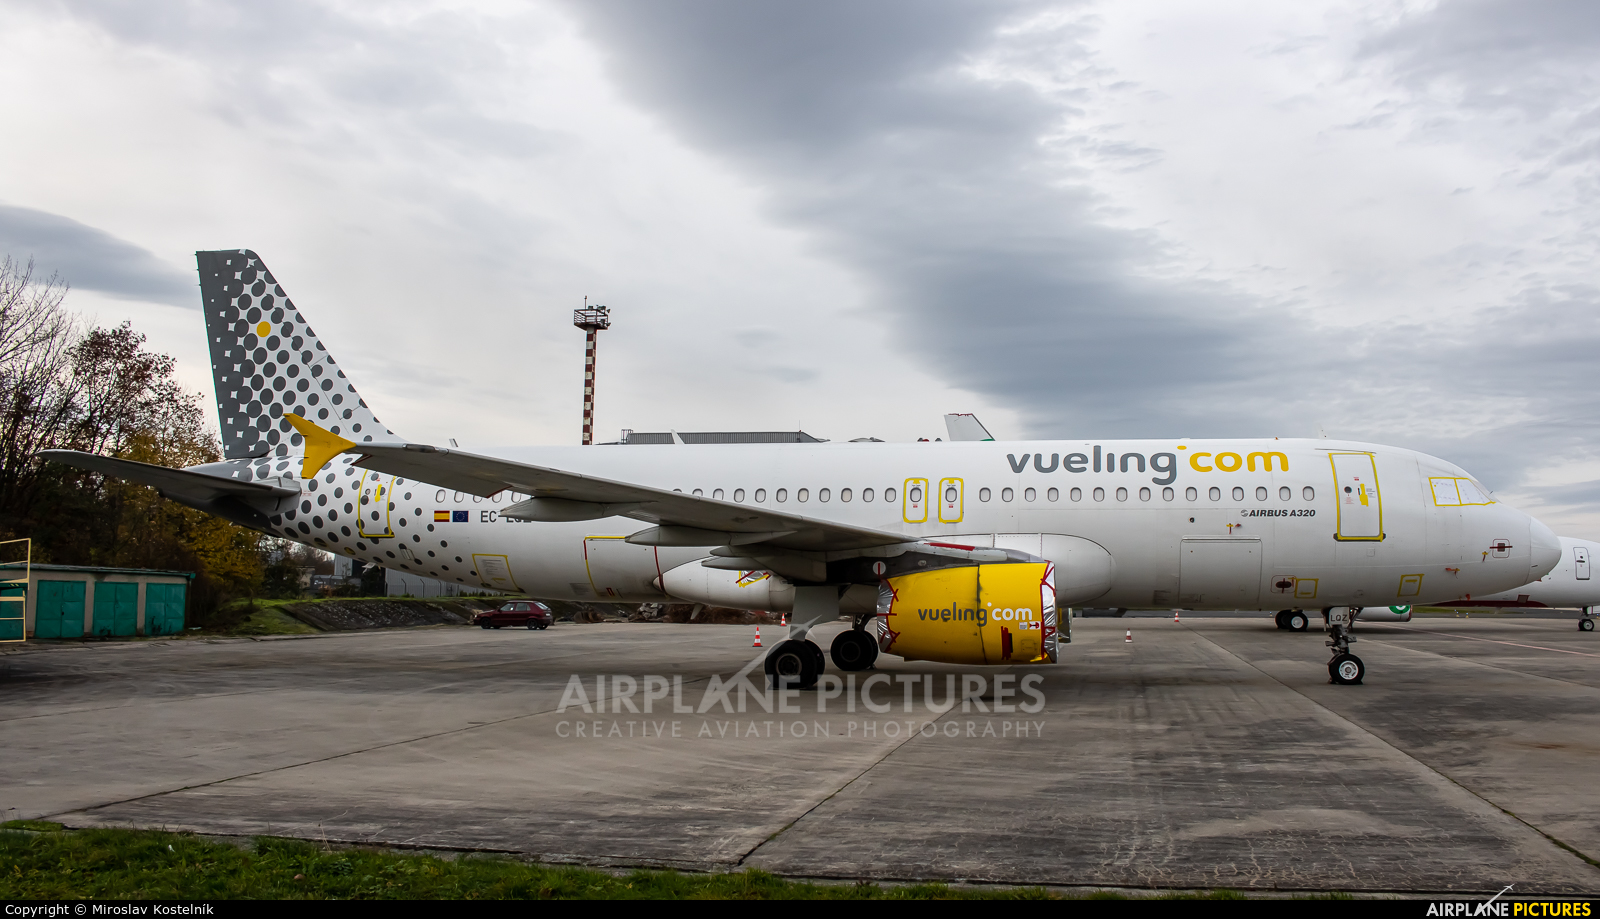 Vueling Airlines EC-LQZ aircraft at Ostrava Mošnov